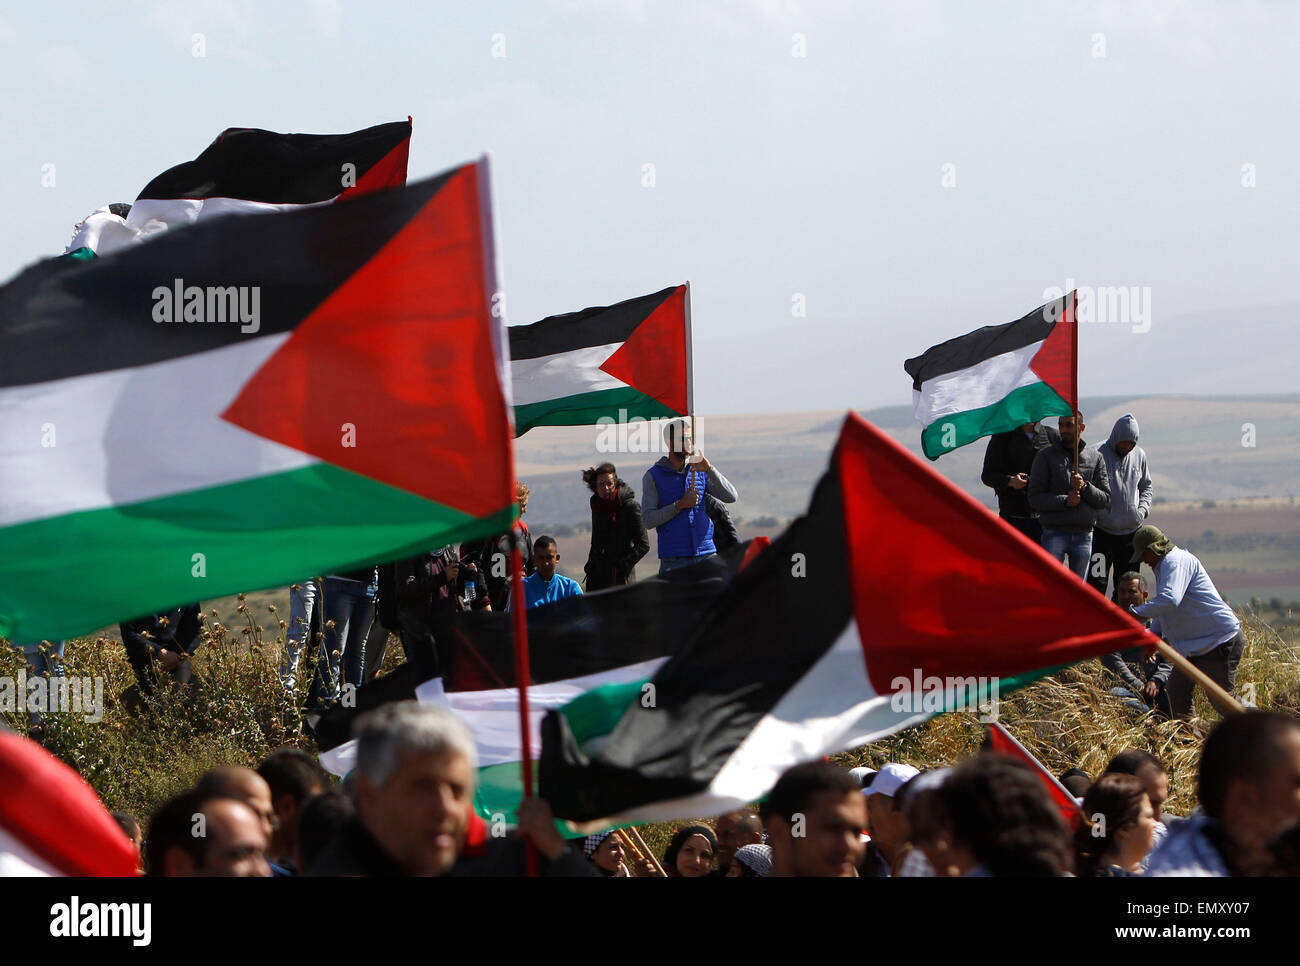 Jerusalem, Israel. 23rd Apr, 2015. Israeli Arabs and other supporters wave Palestinian flags during a protest to - Stock Image